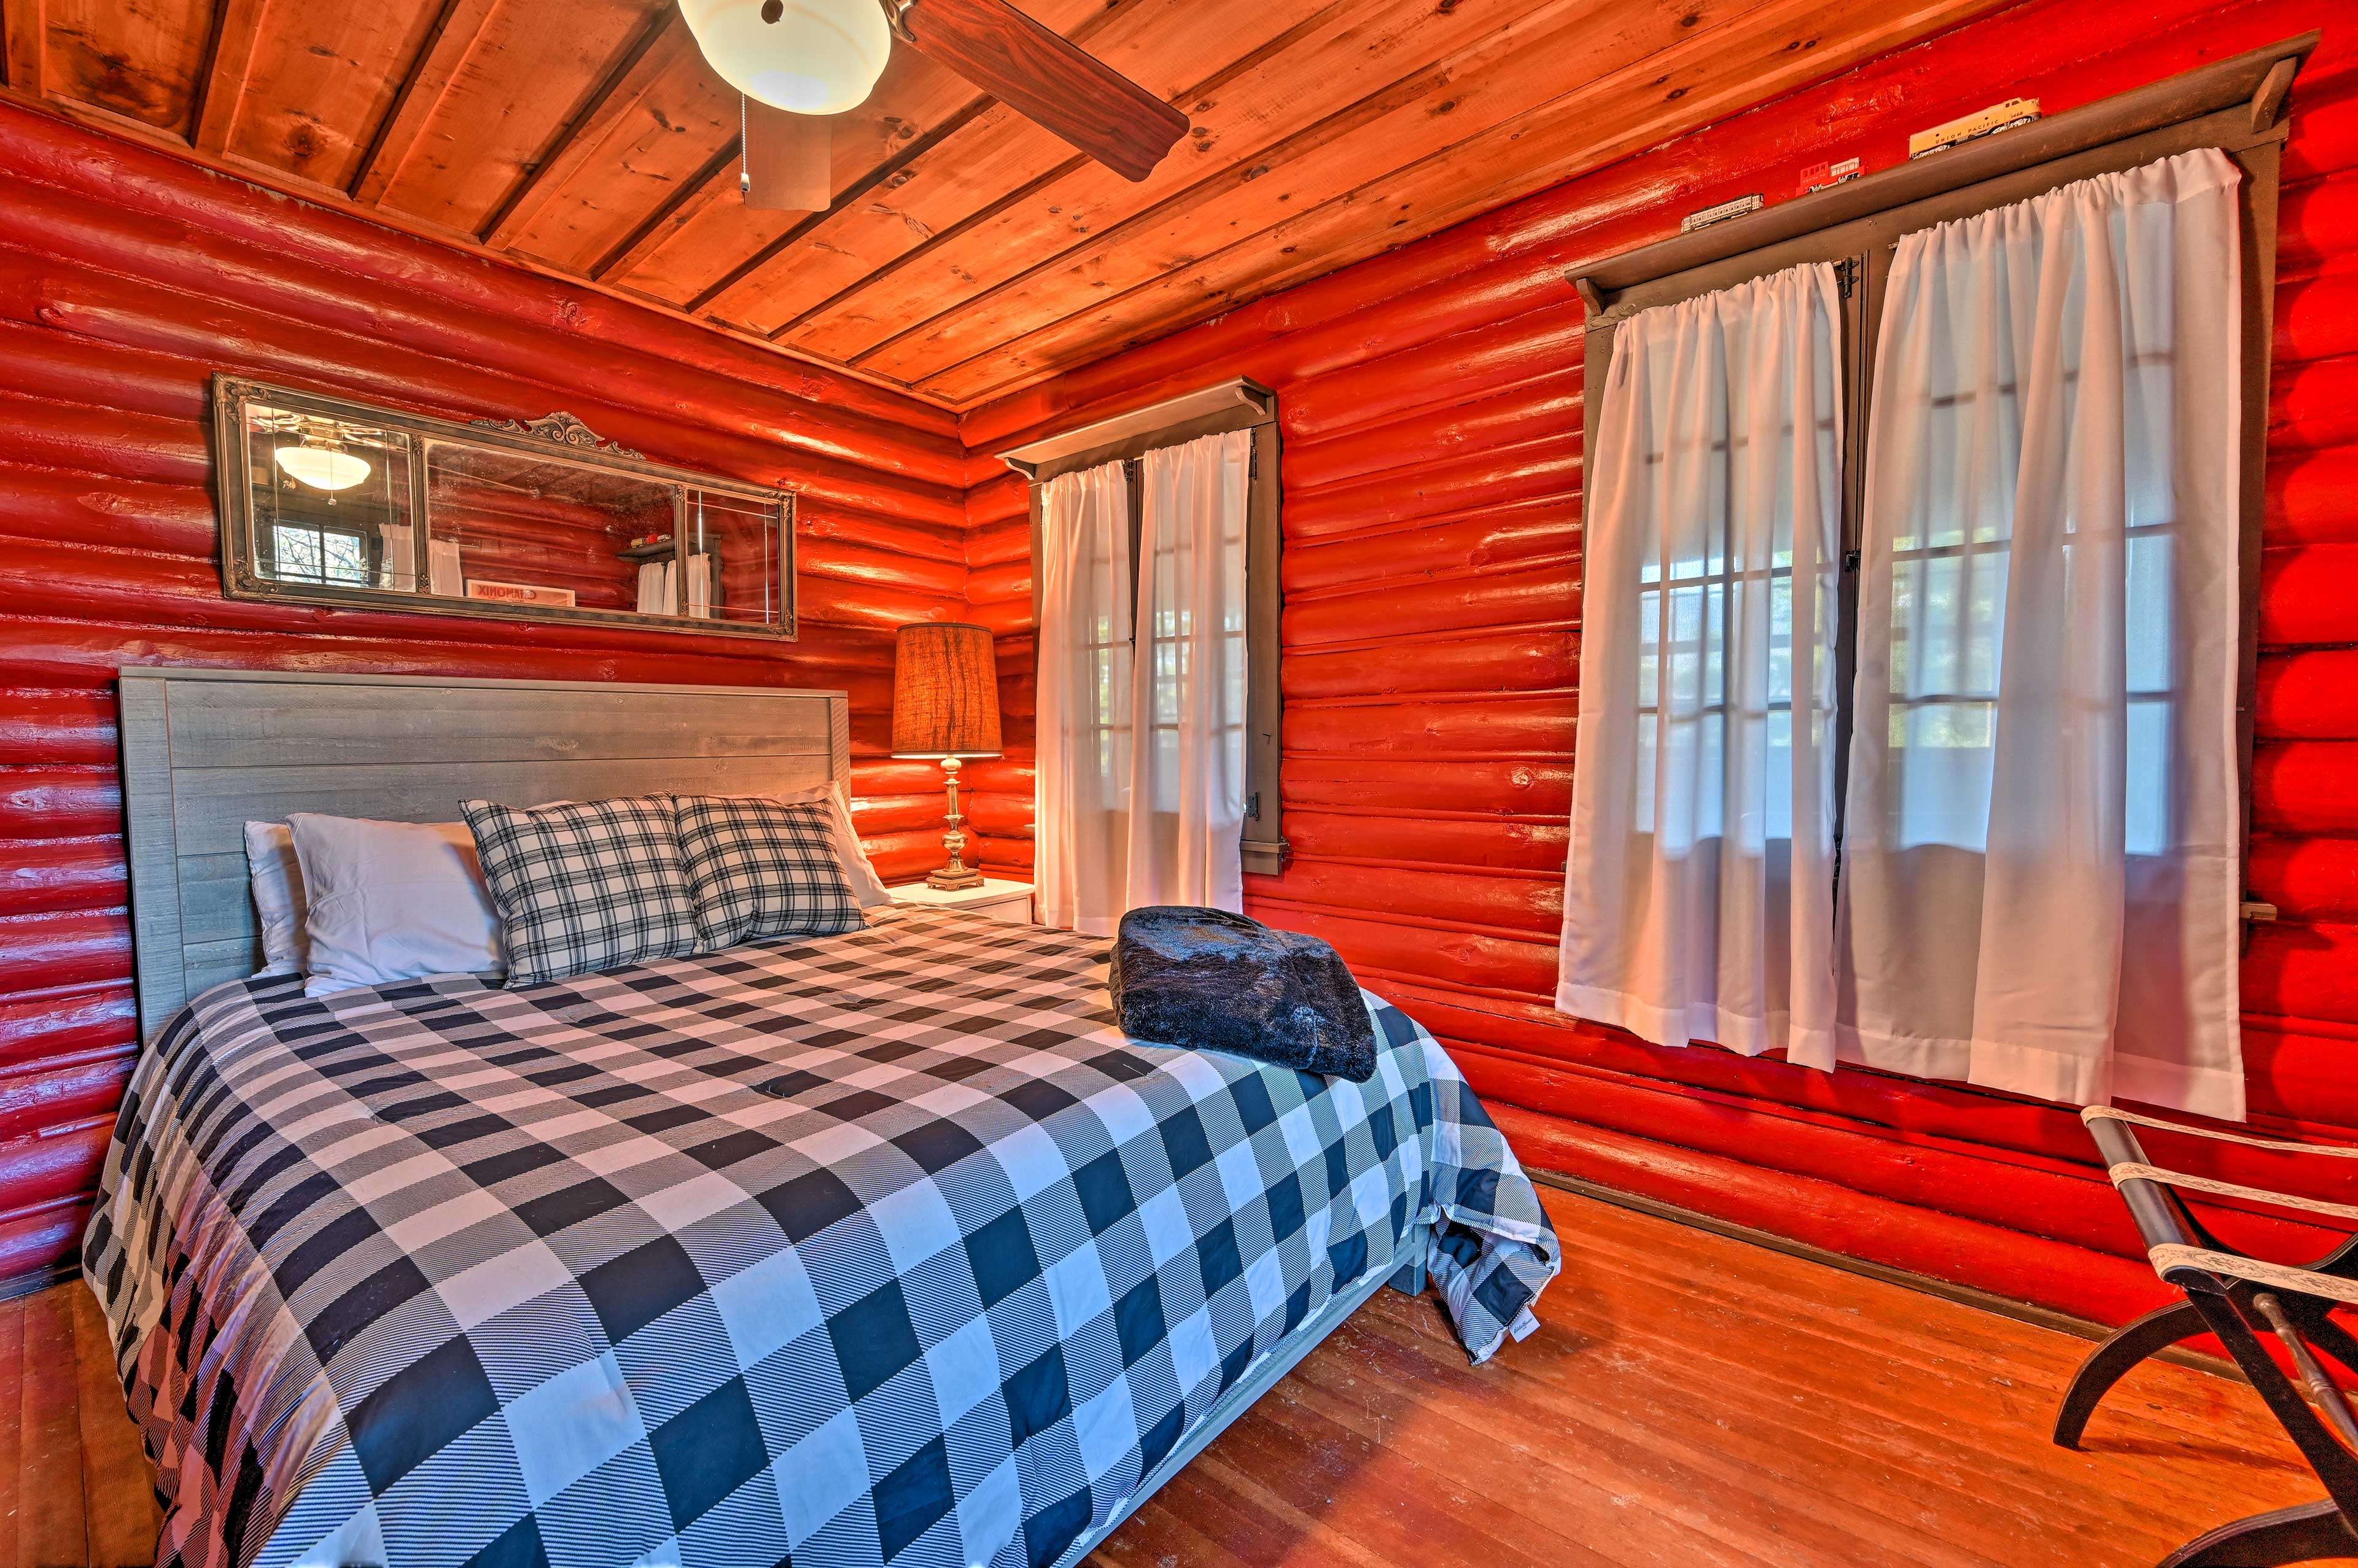 Claim this cozy bedroom as your own!